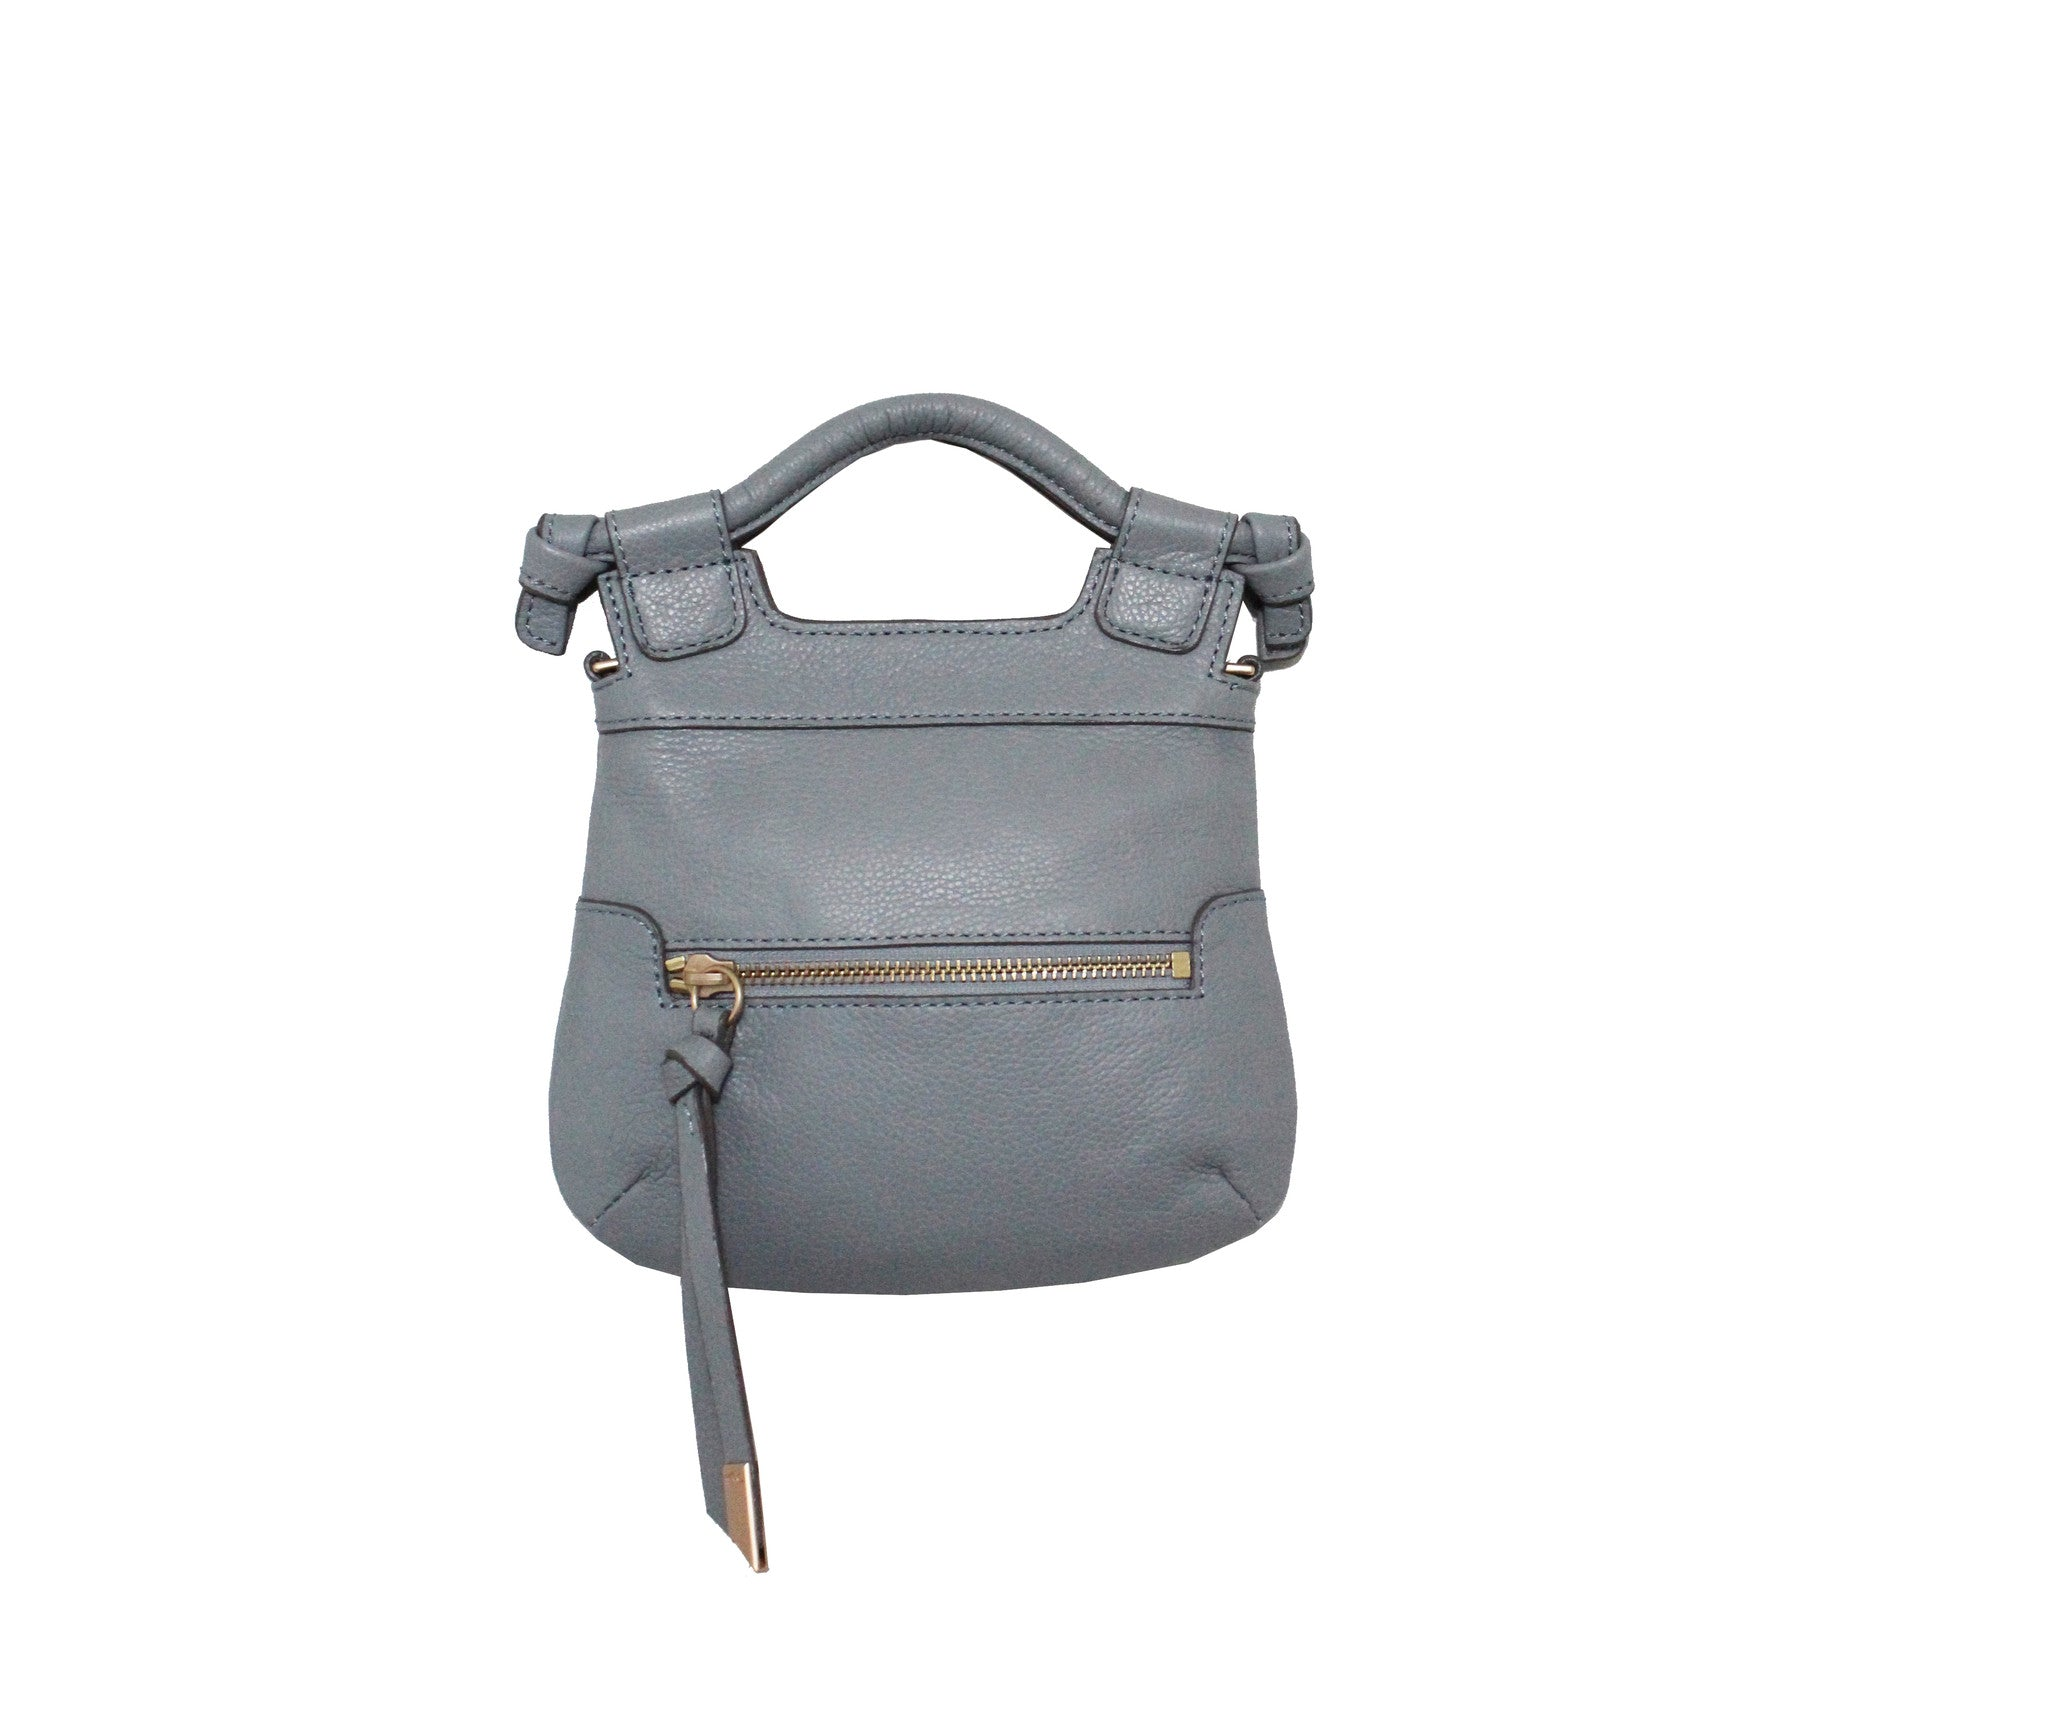 TINY CITY CROSSBODY IN MISTY GREY